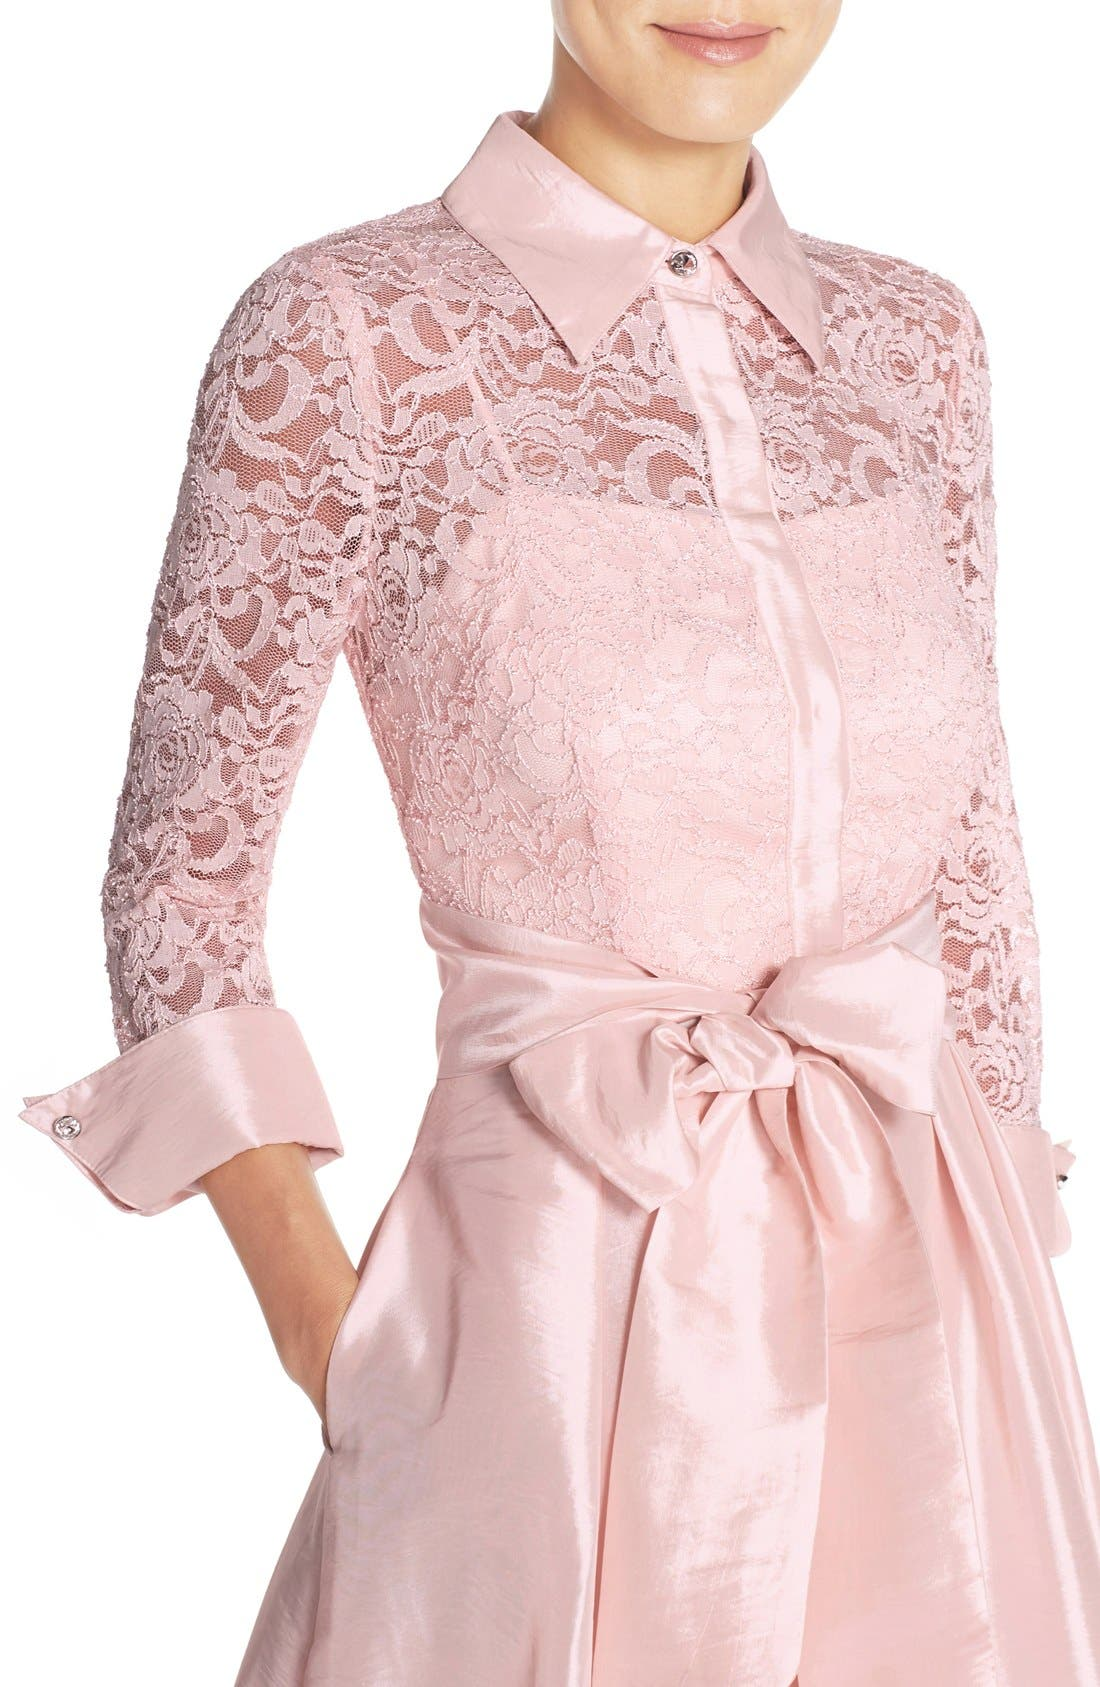 Belted Lace & Taffeta Point Collar Midi Dress,                             Alternate thumbnail 5, color,                             Blush